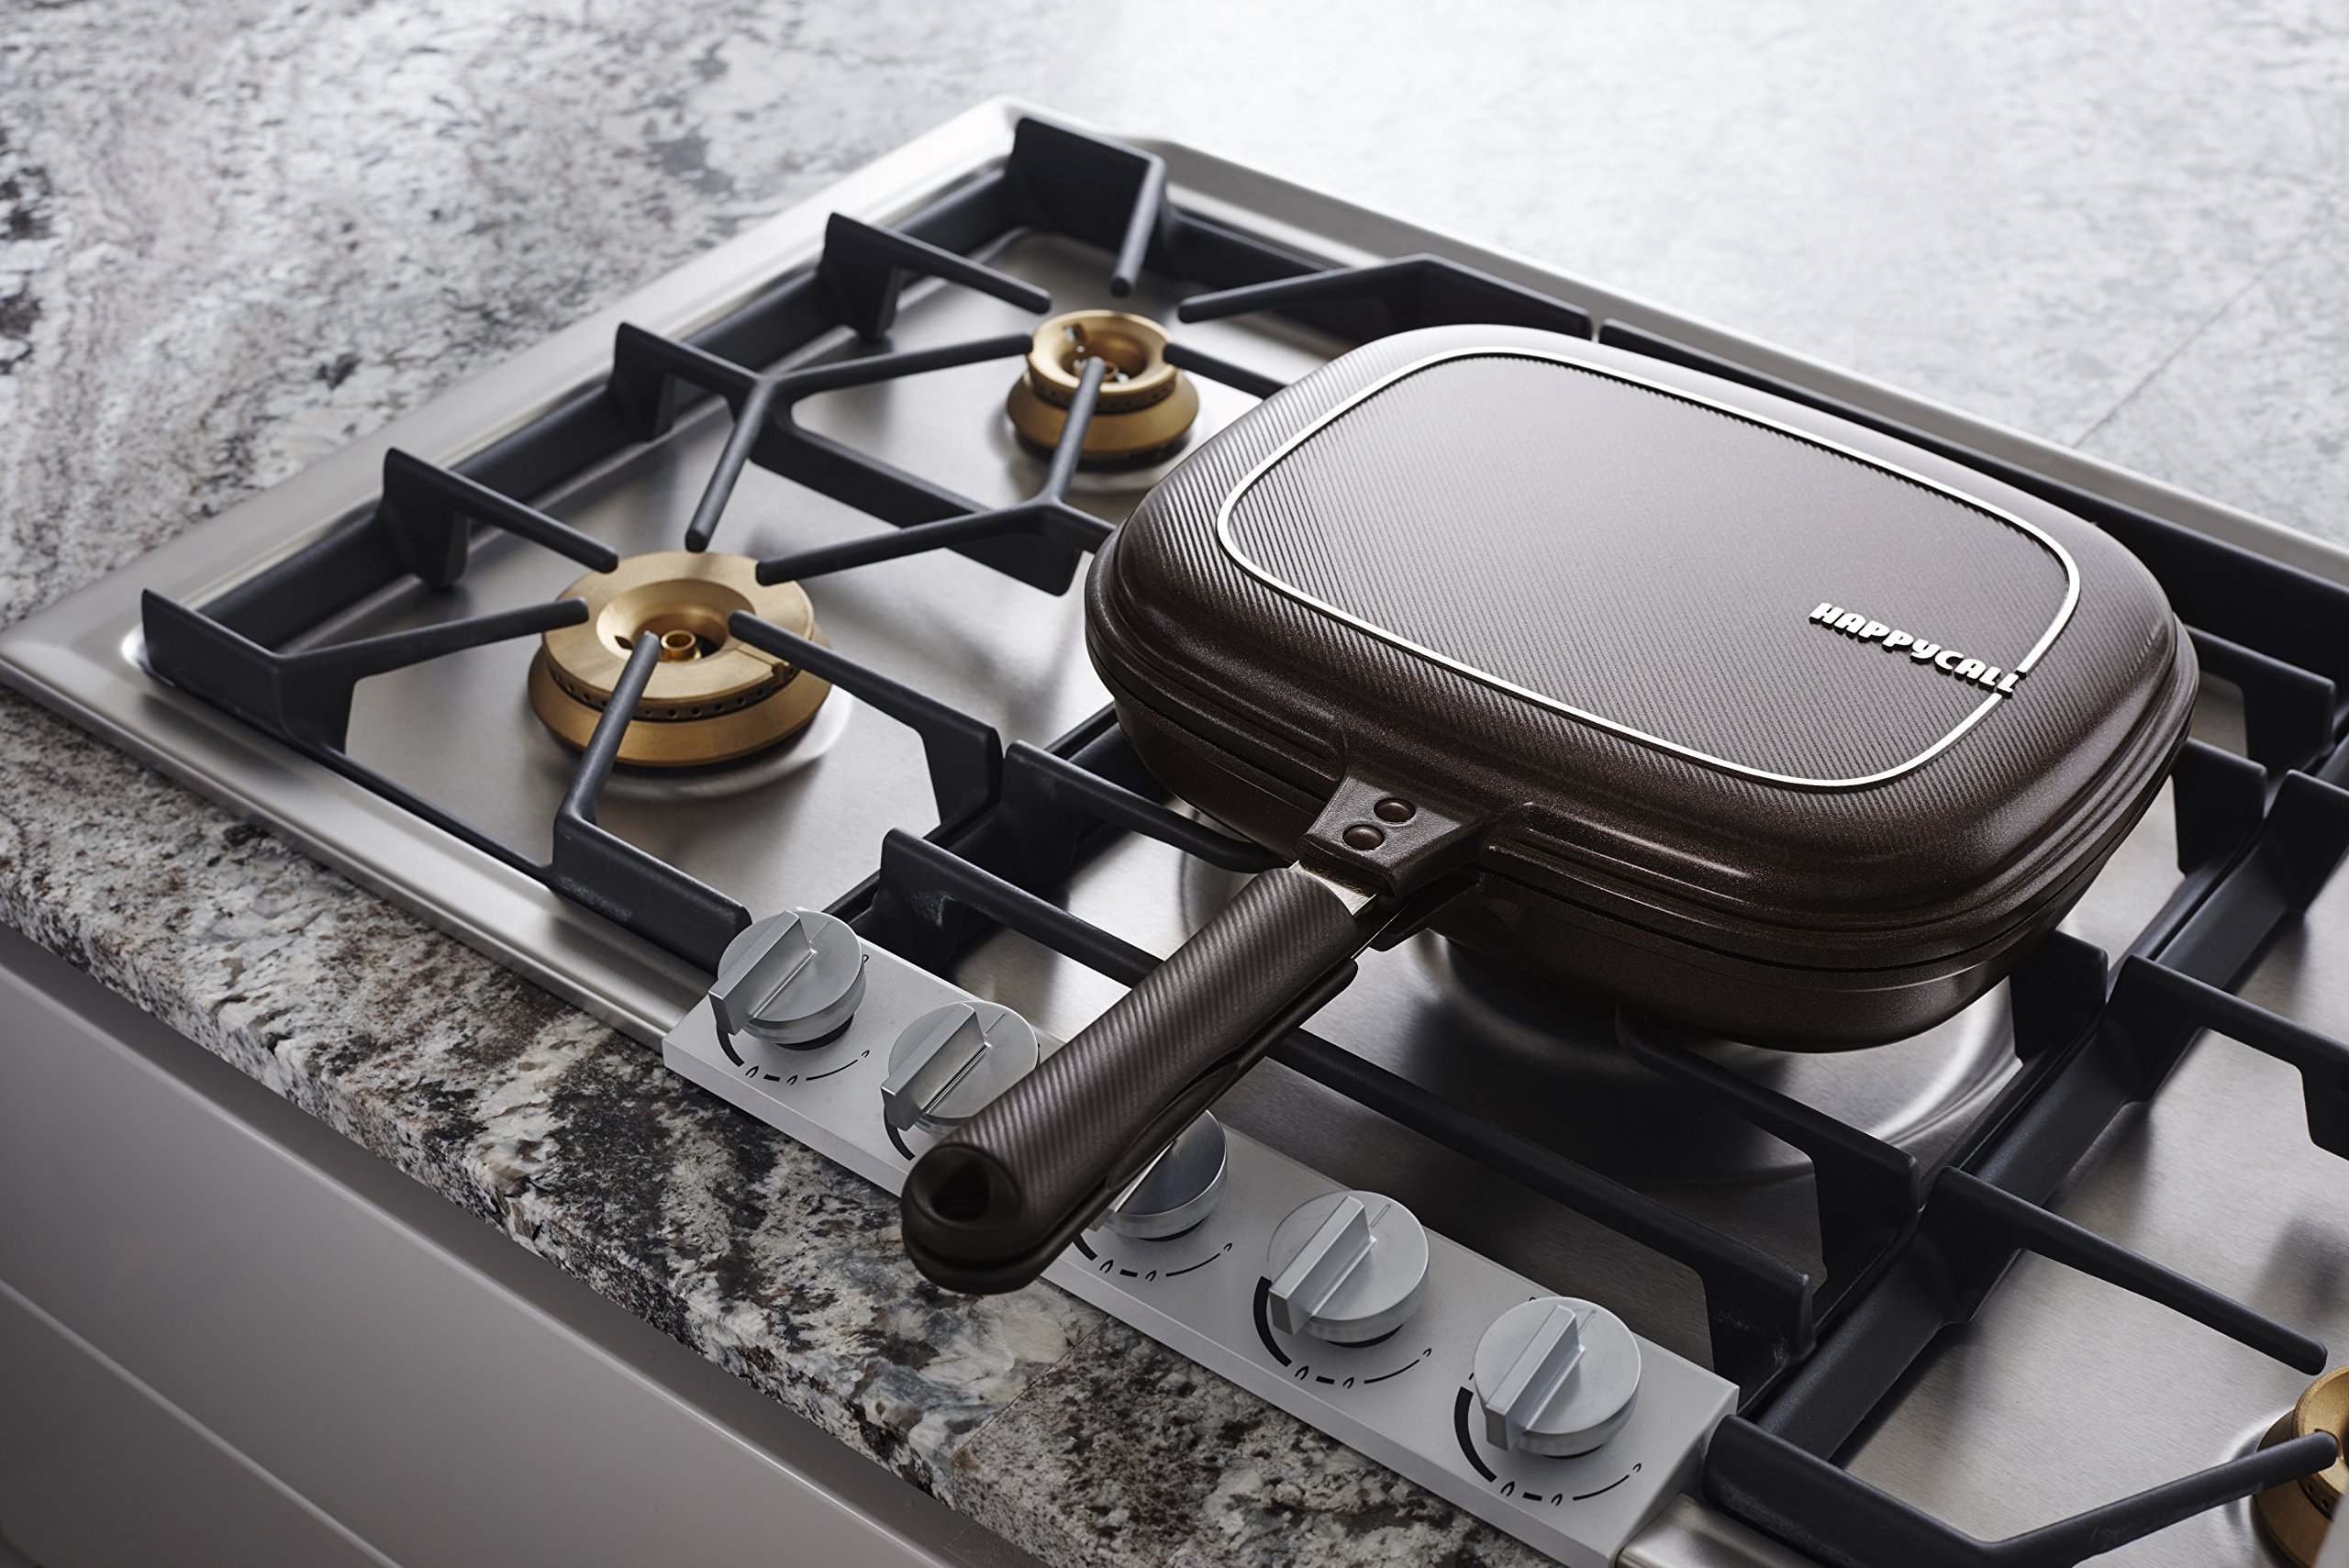 Happycall Titanium Nonstick Double Pan, Omelette Pan, Flip Pan, Square, Dishwasher Safe, PFOA-free, Brown (Jumbo Grill) by Happycall (Image #5)